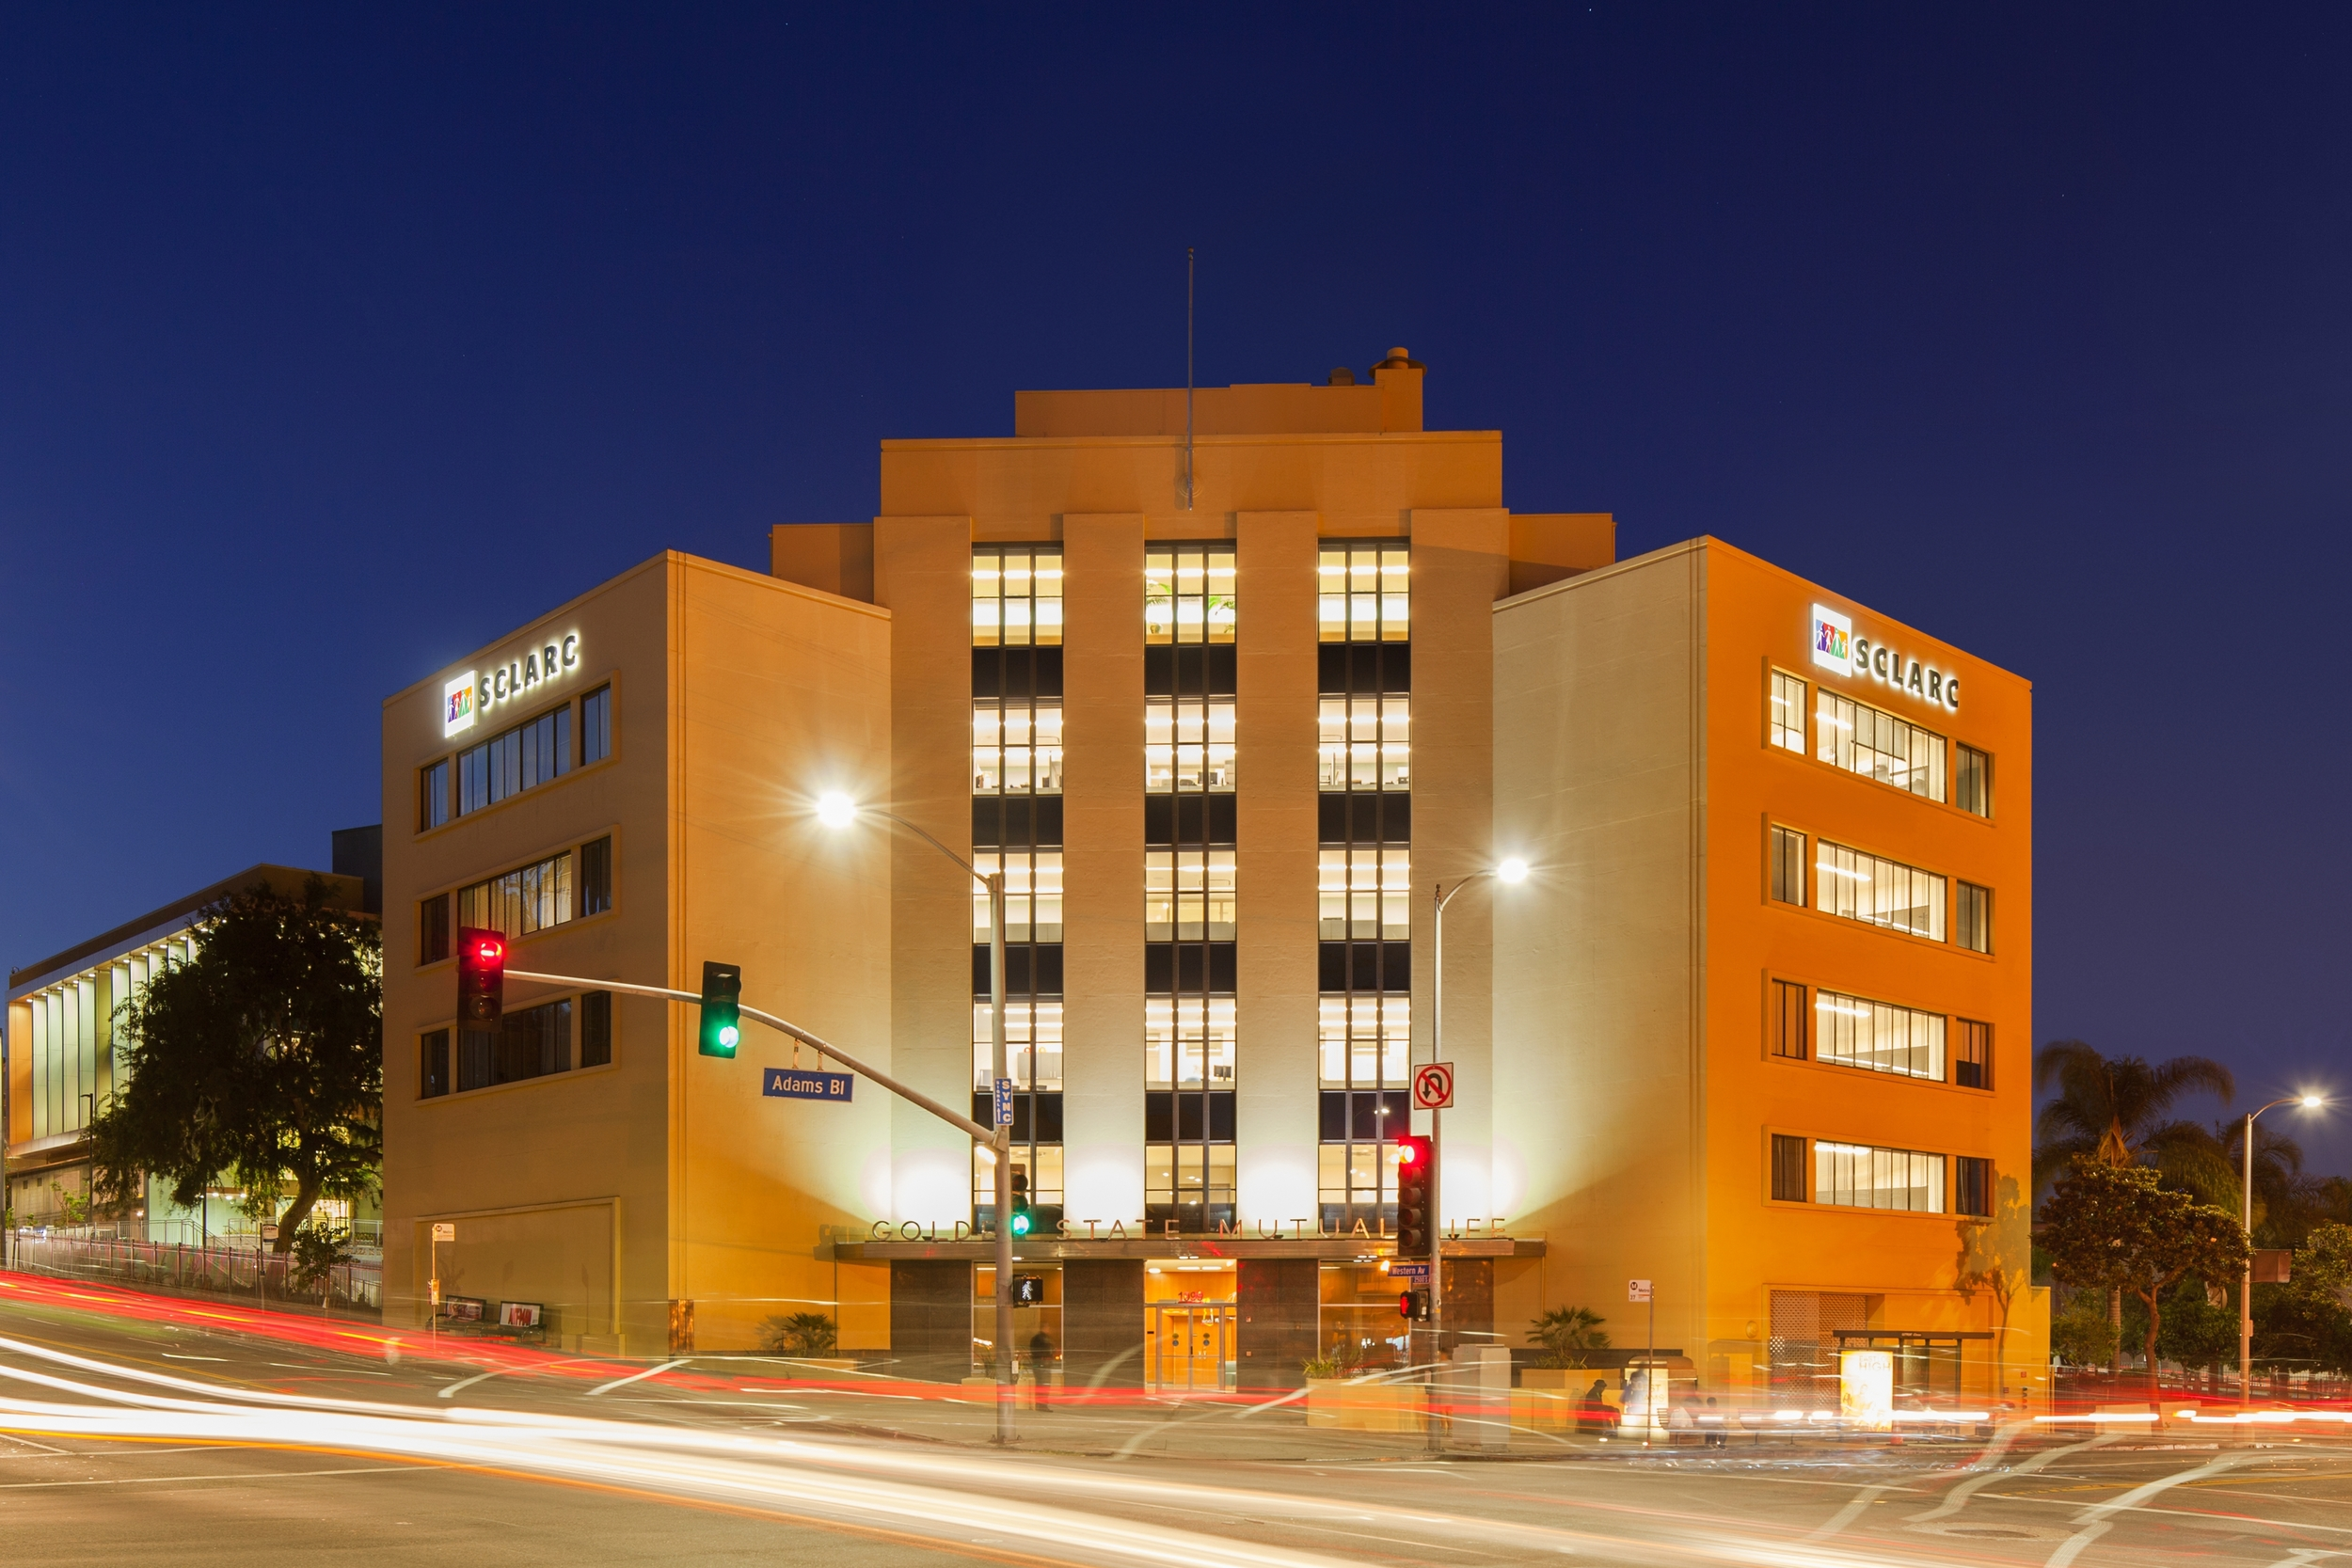 SCLARC Golden State Mutual Building